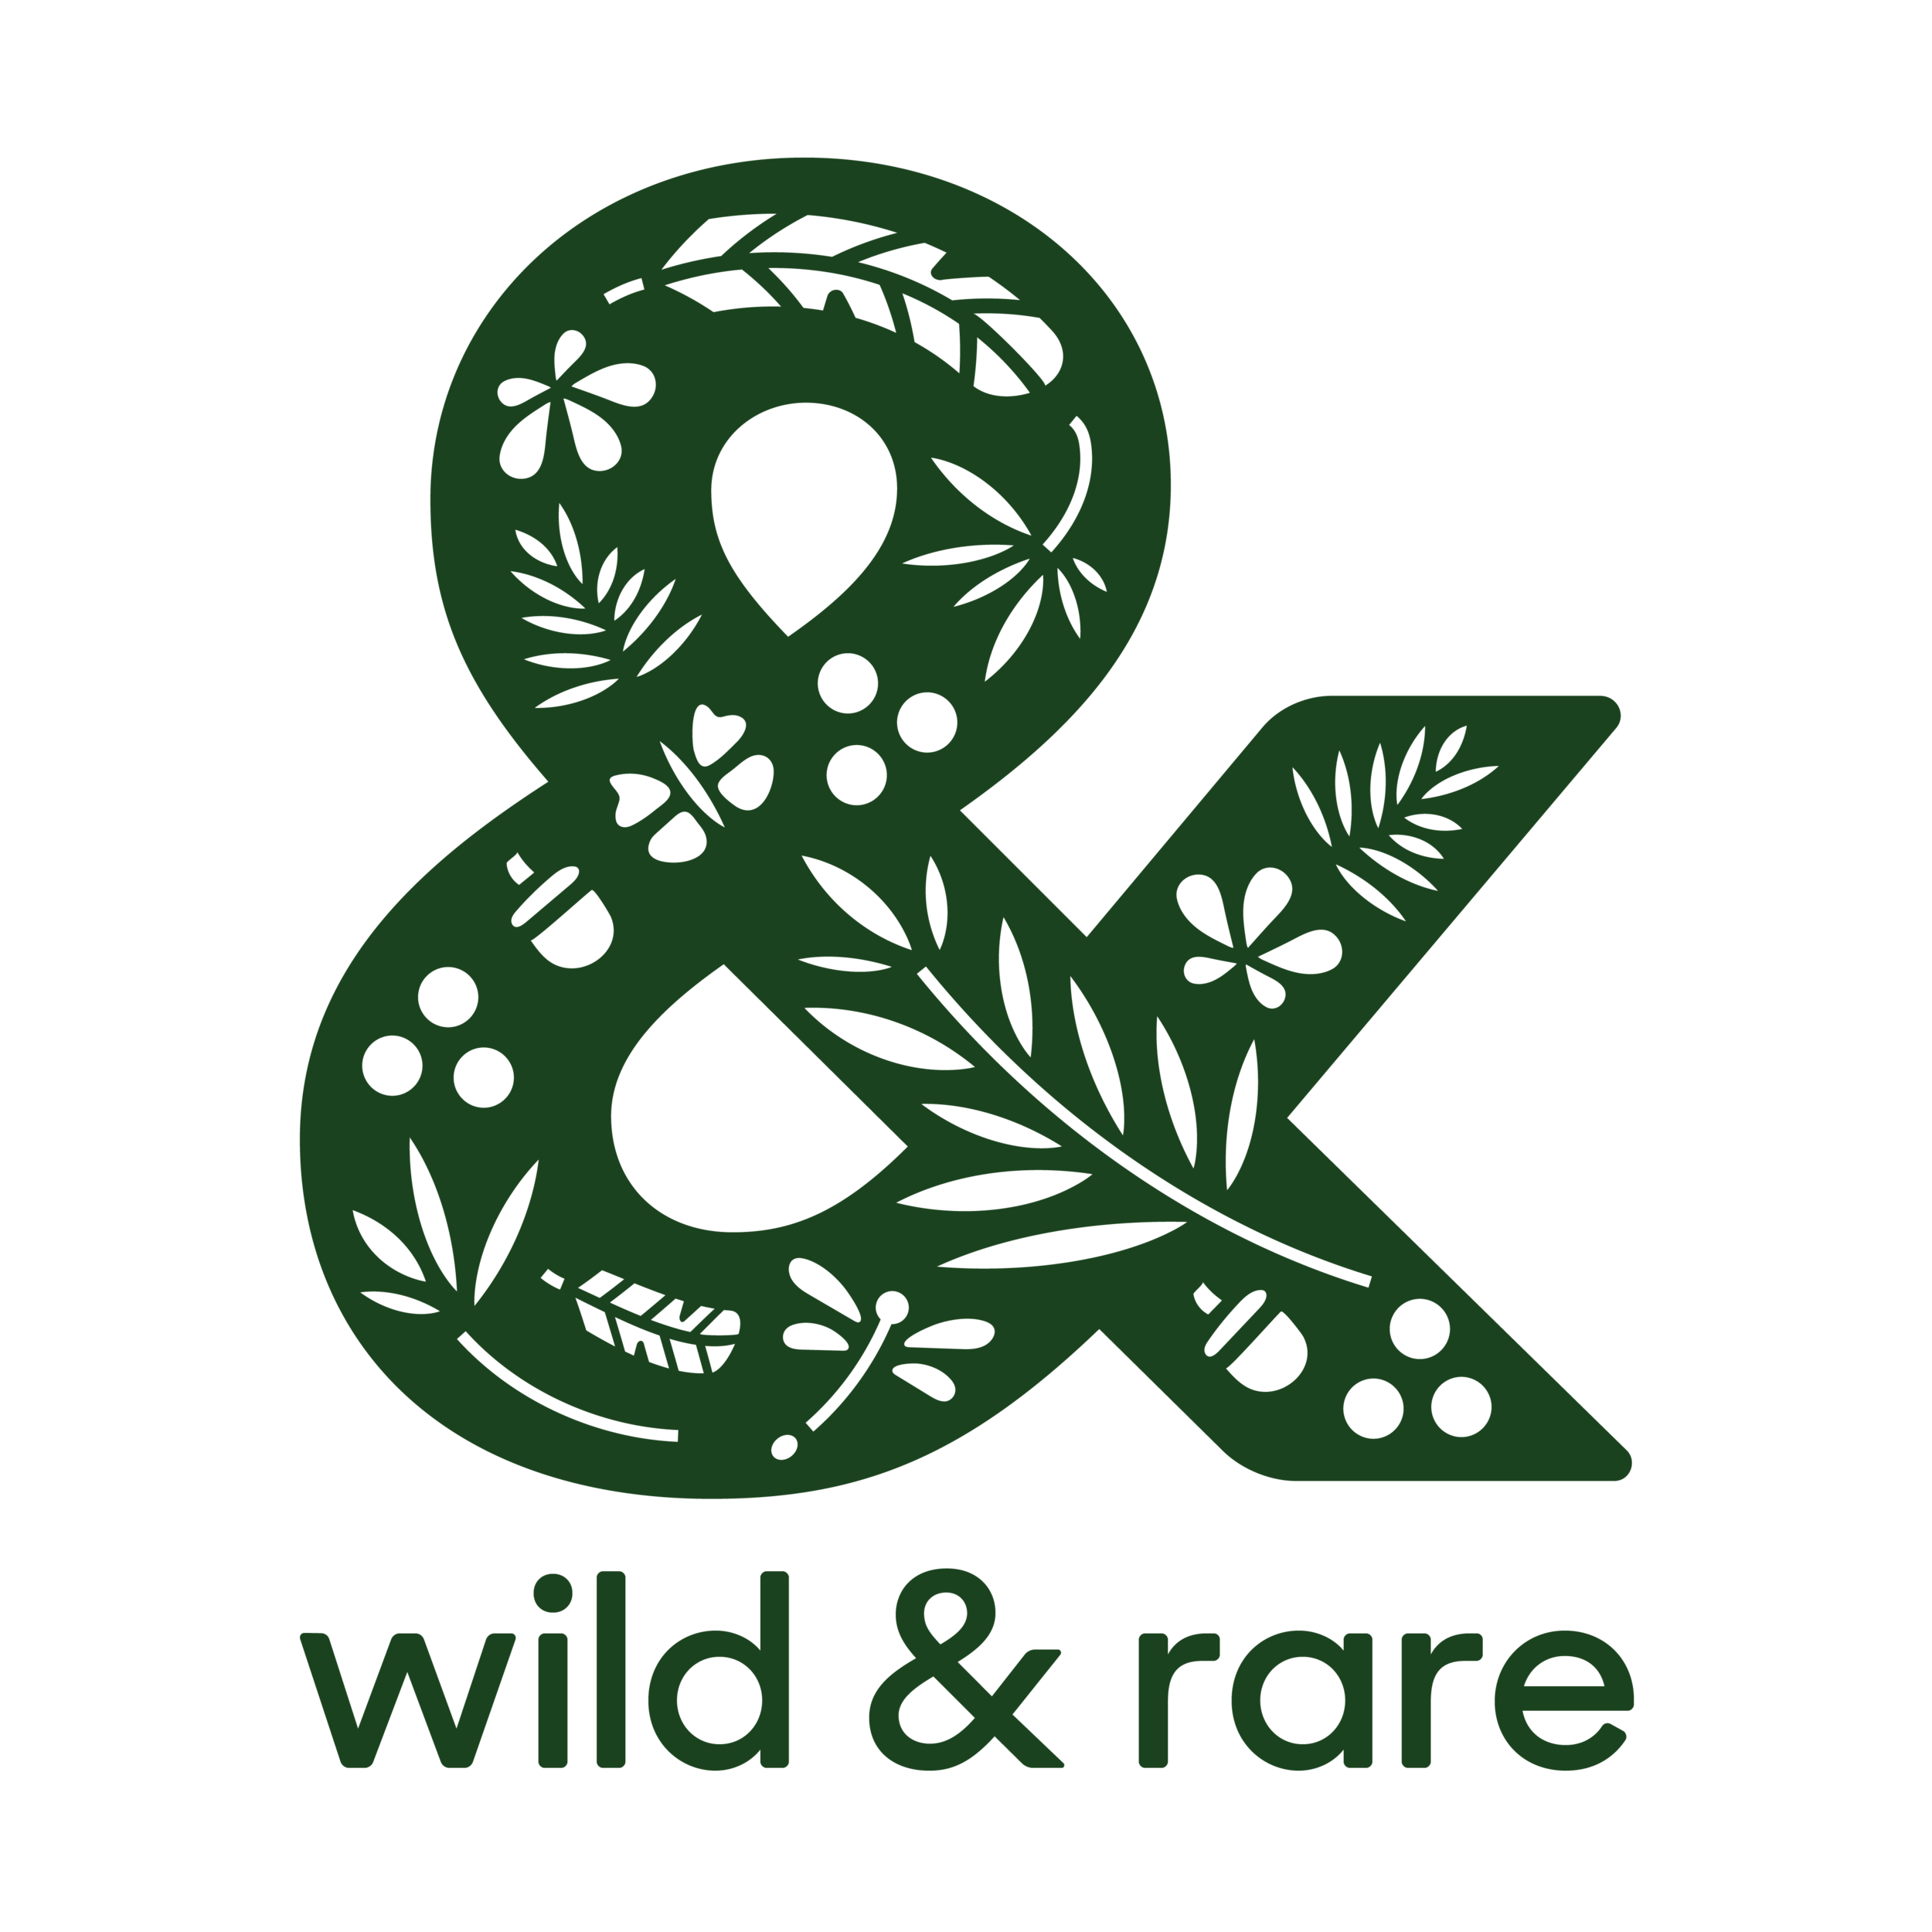 Accessories & jewelry company supporting conservation efforts